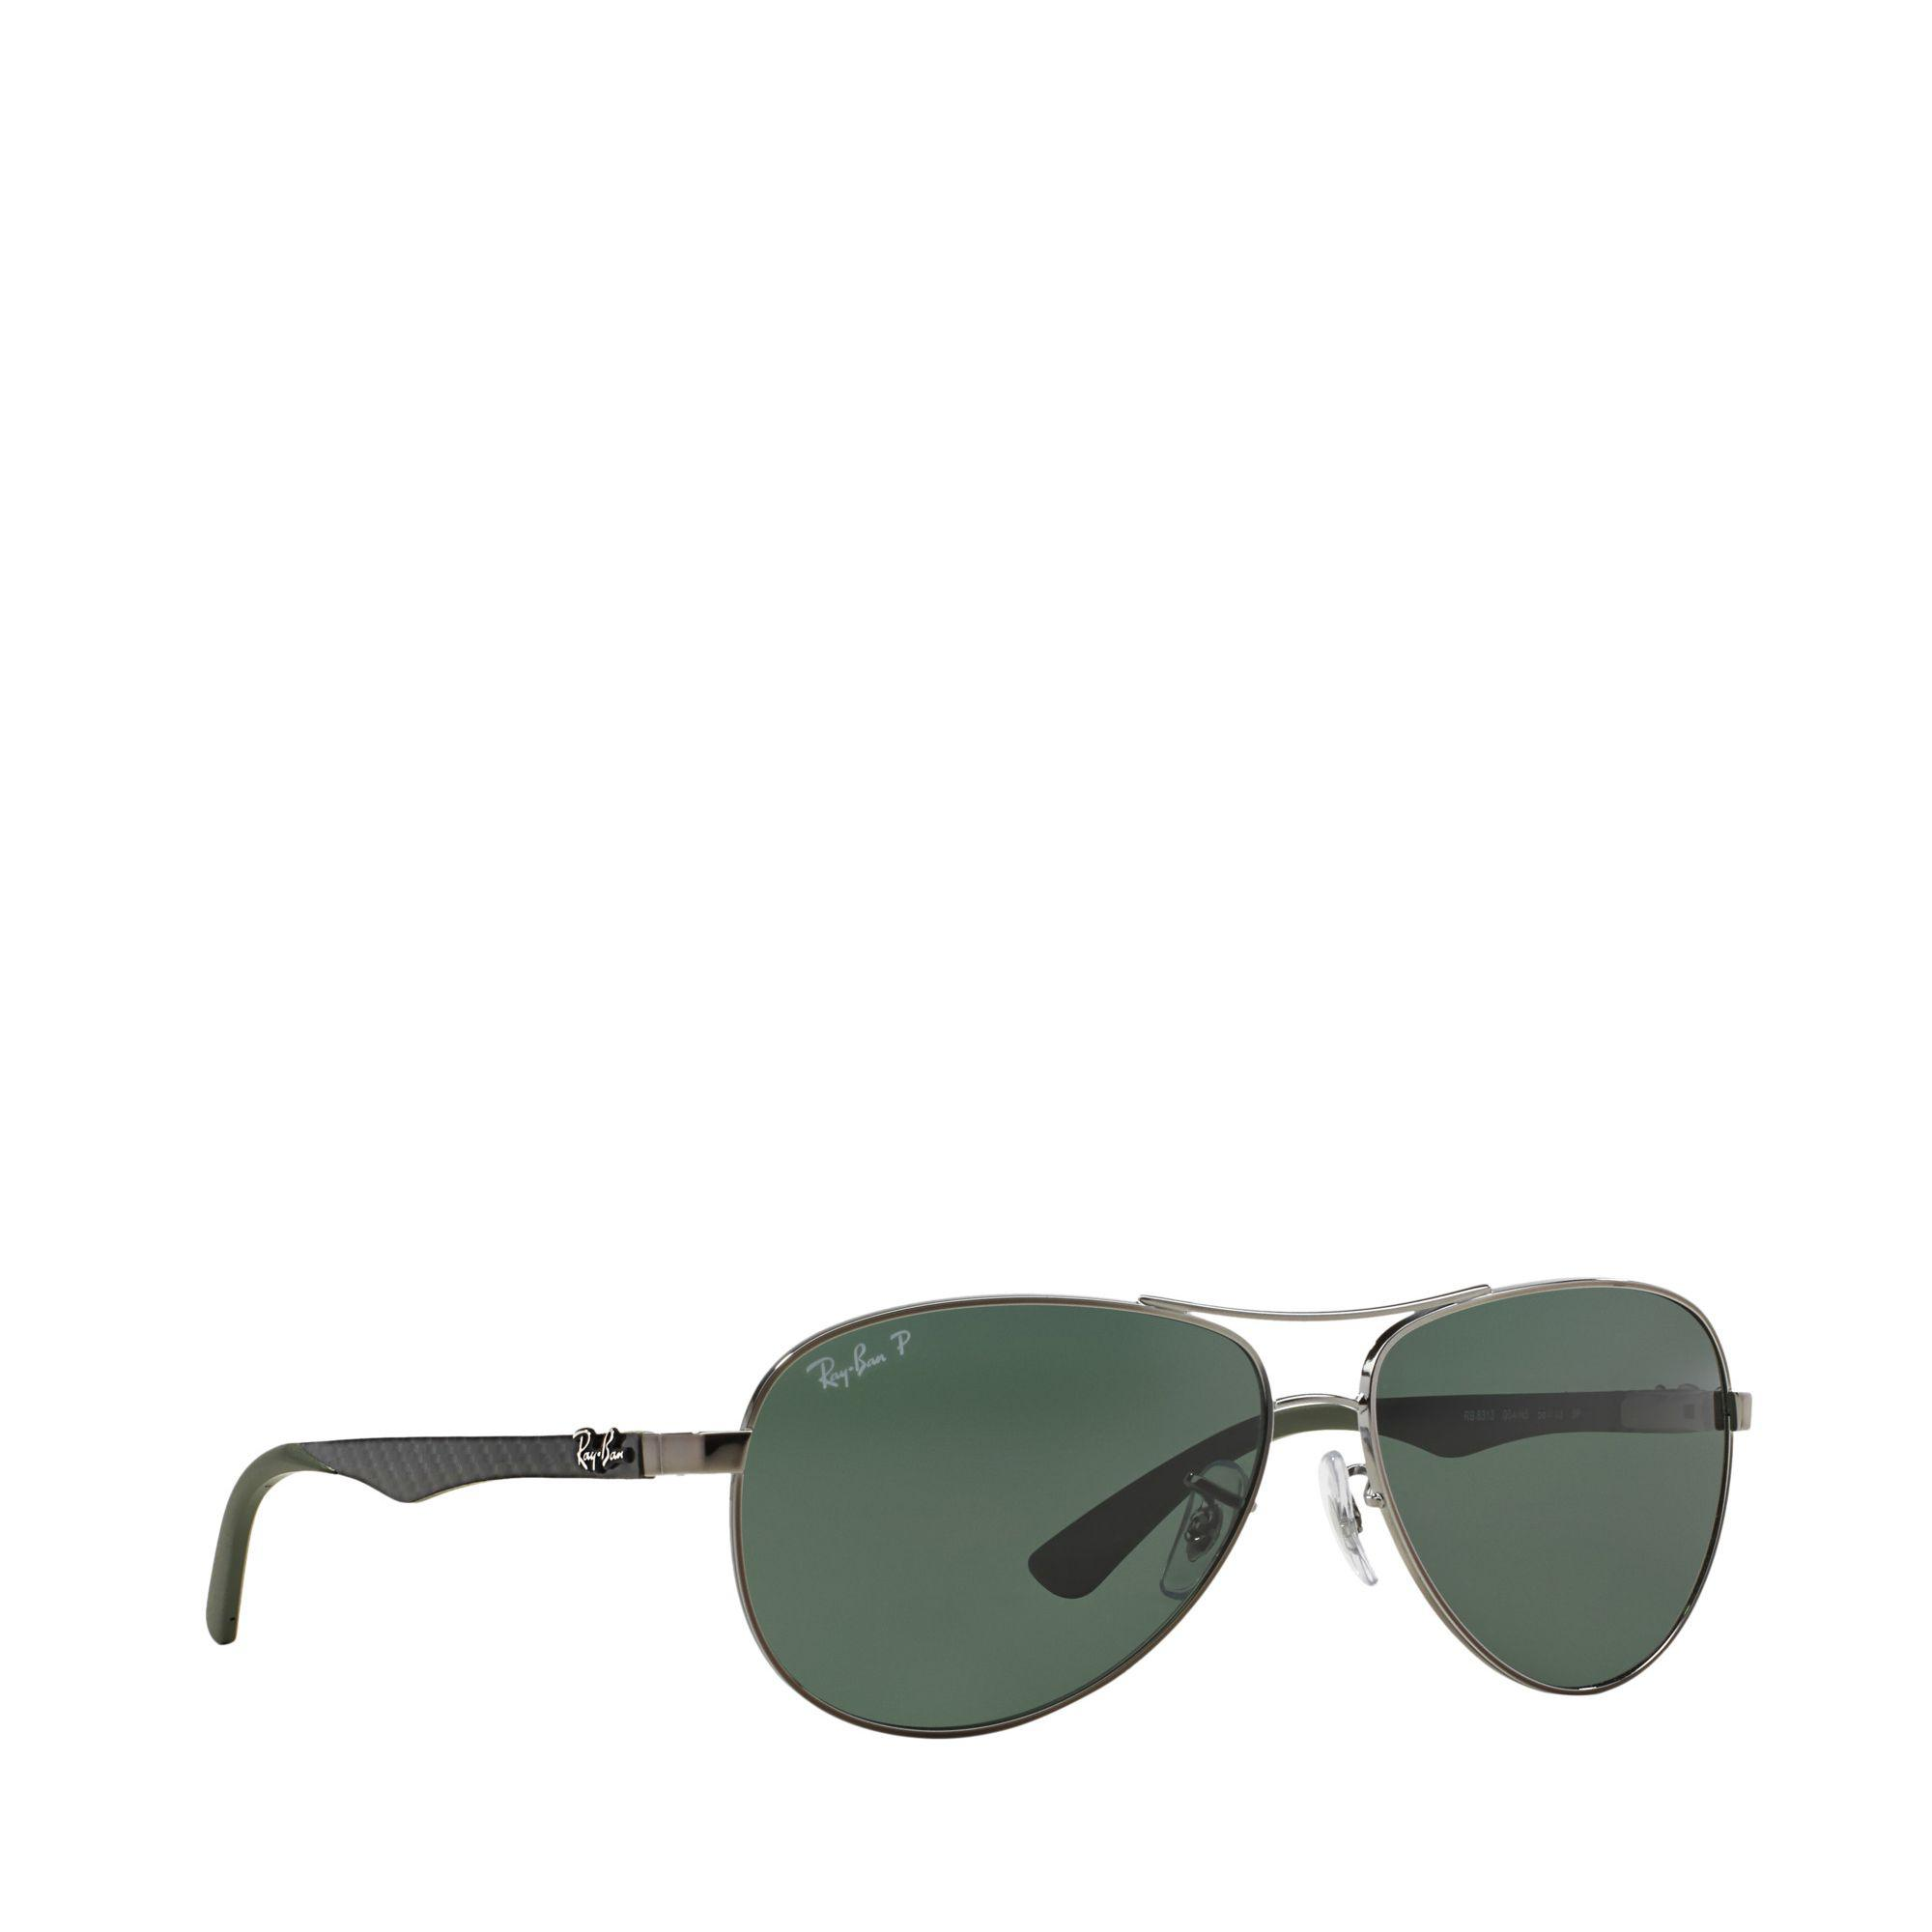 92304b03506 Ray-Ban Gunmetal Rb8313 Pilot Sunglasses in Gray for Men - Lyst